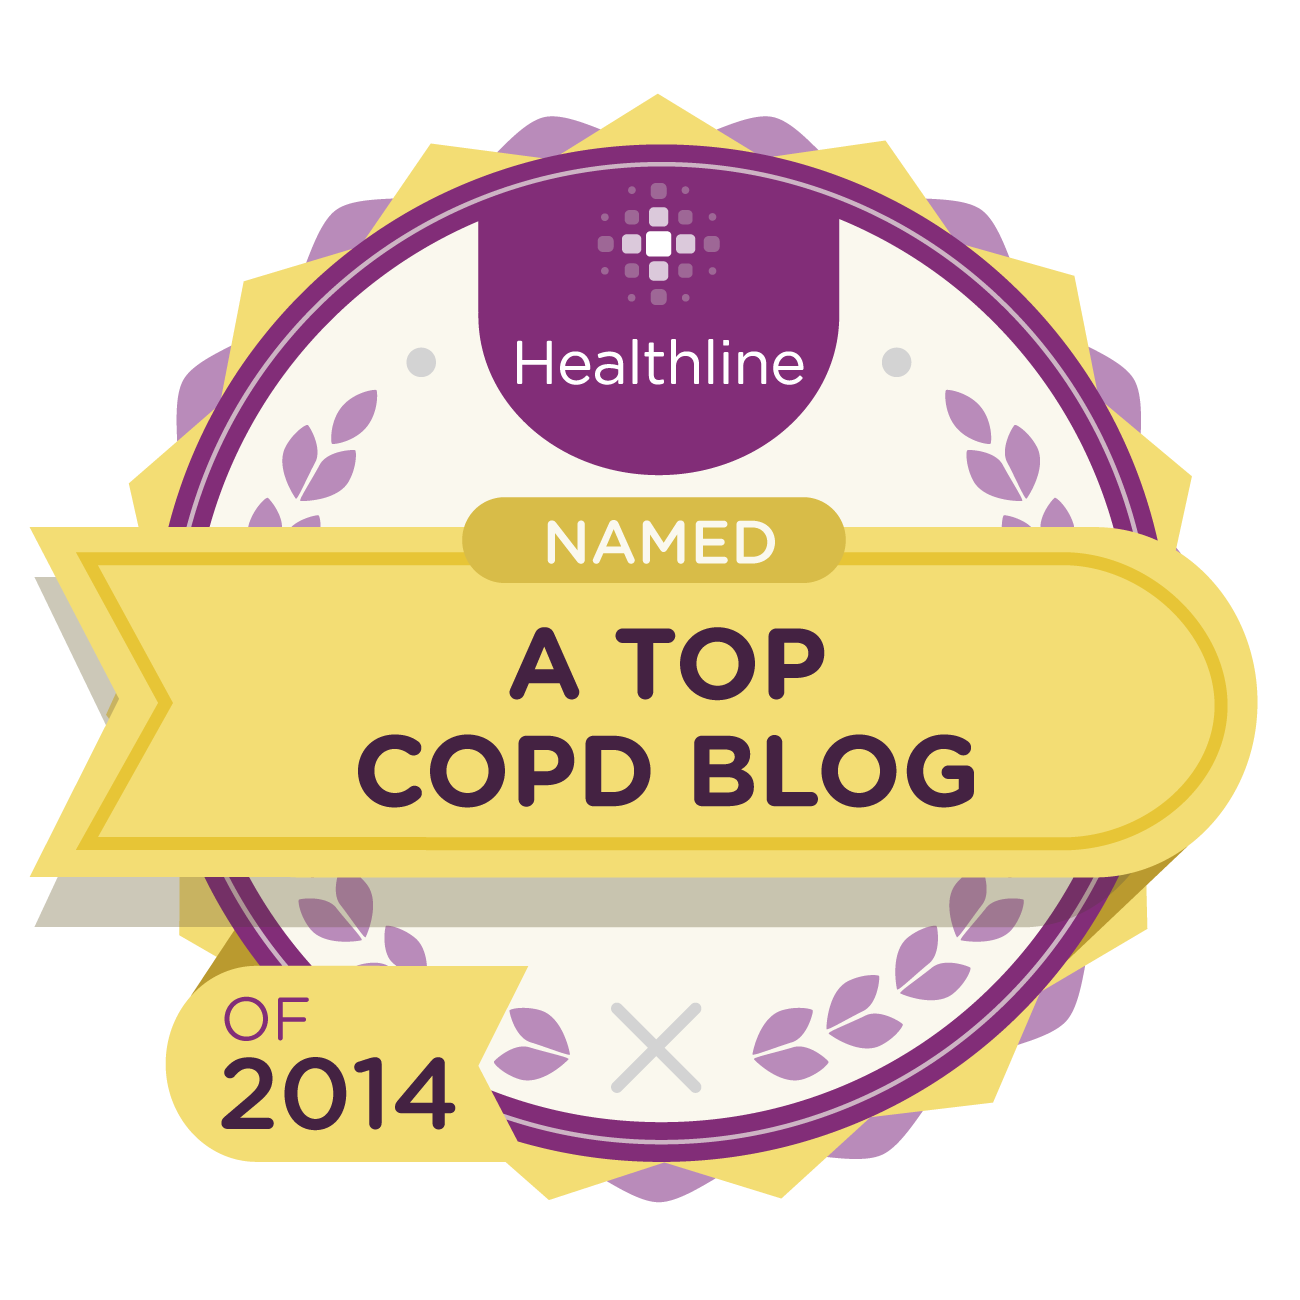 The 12 Best COPD Blogs of 2014